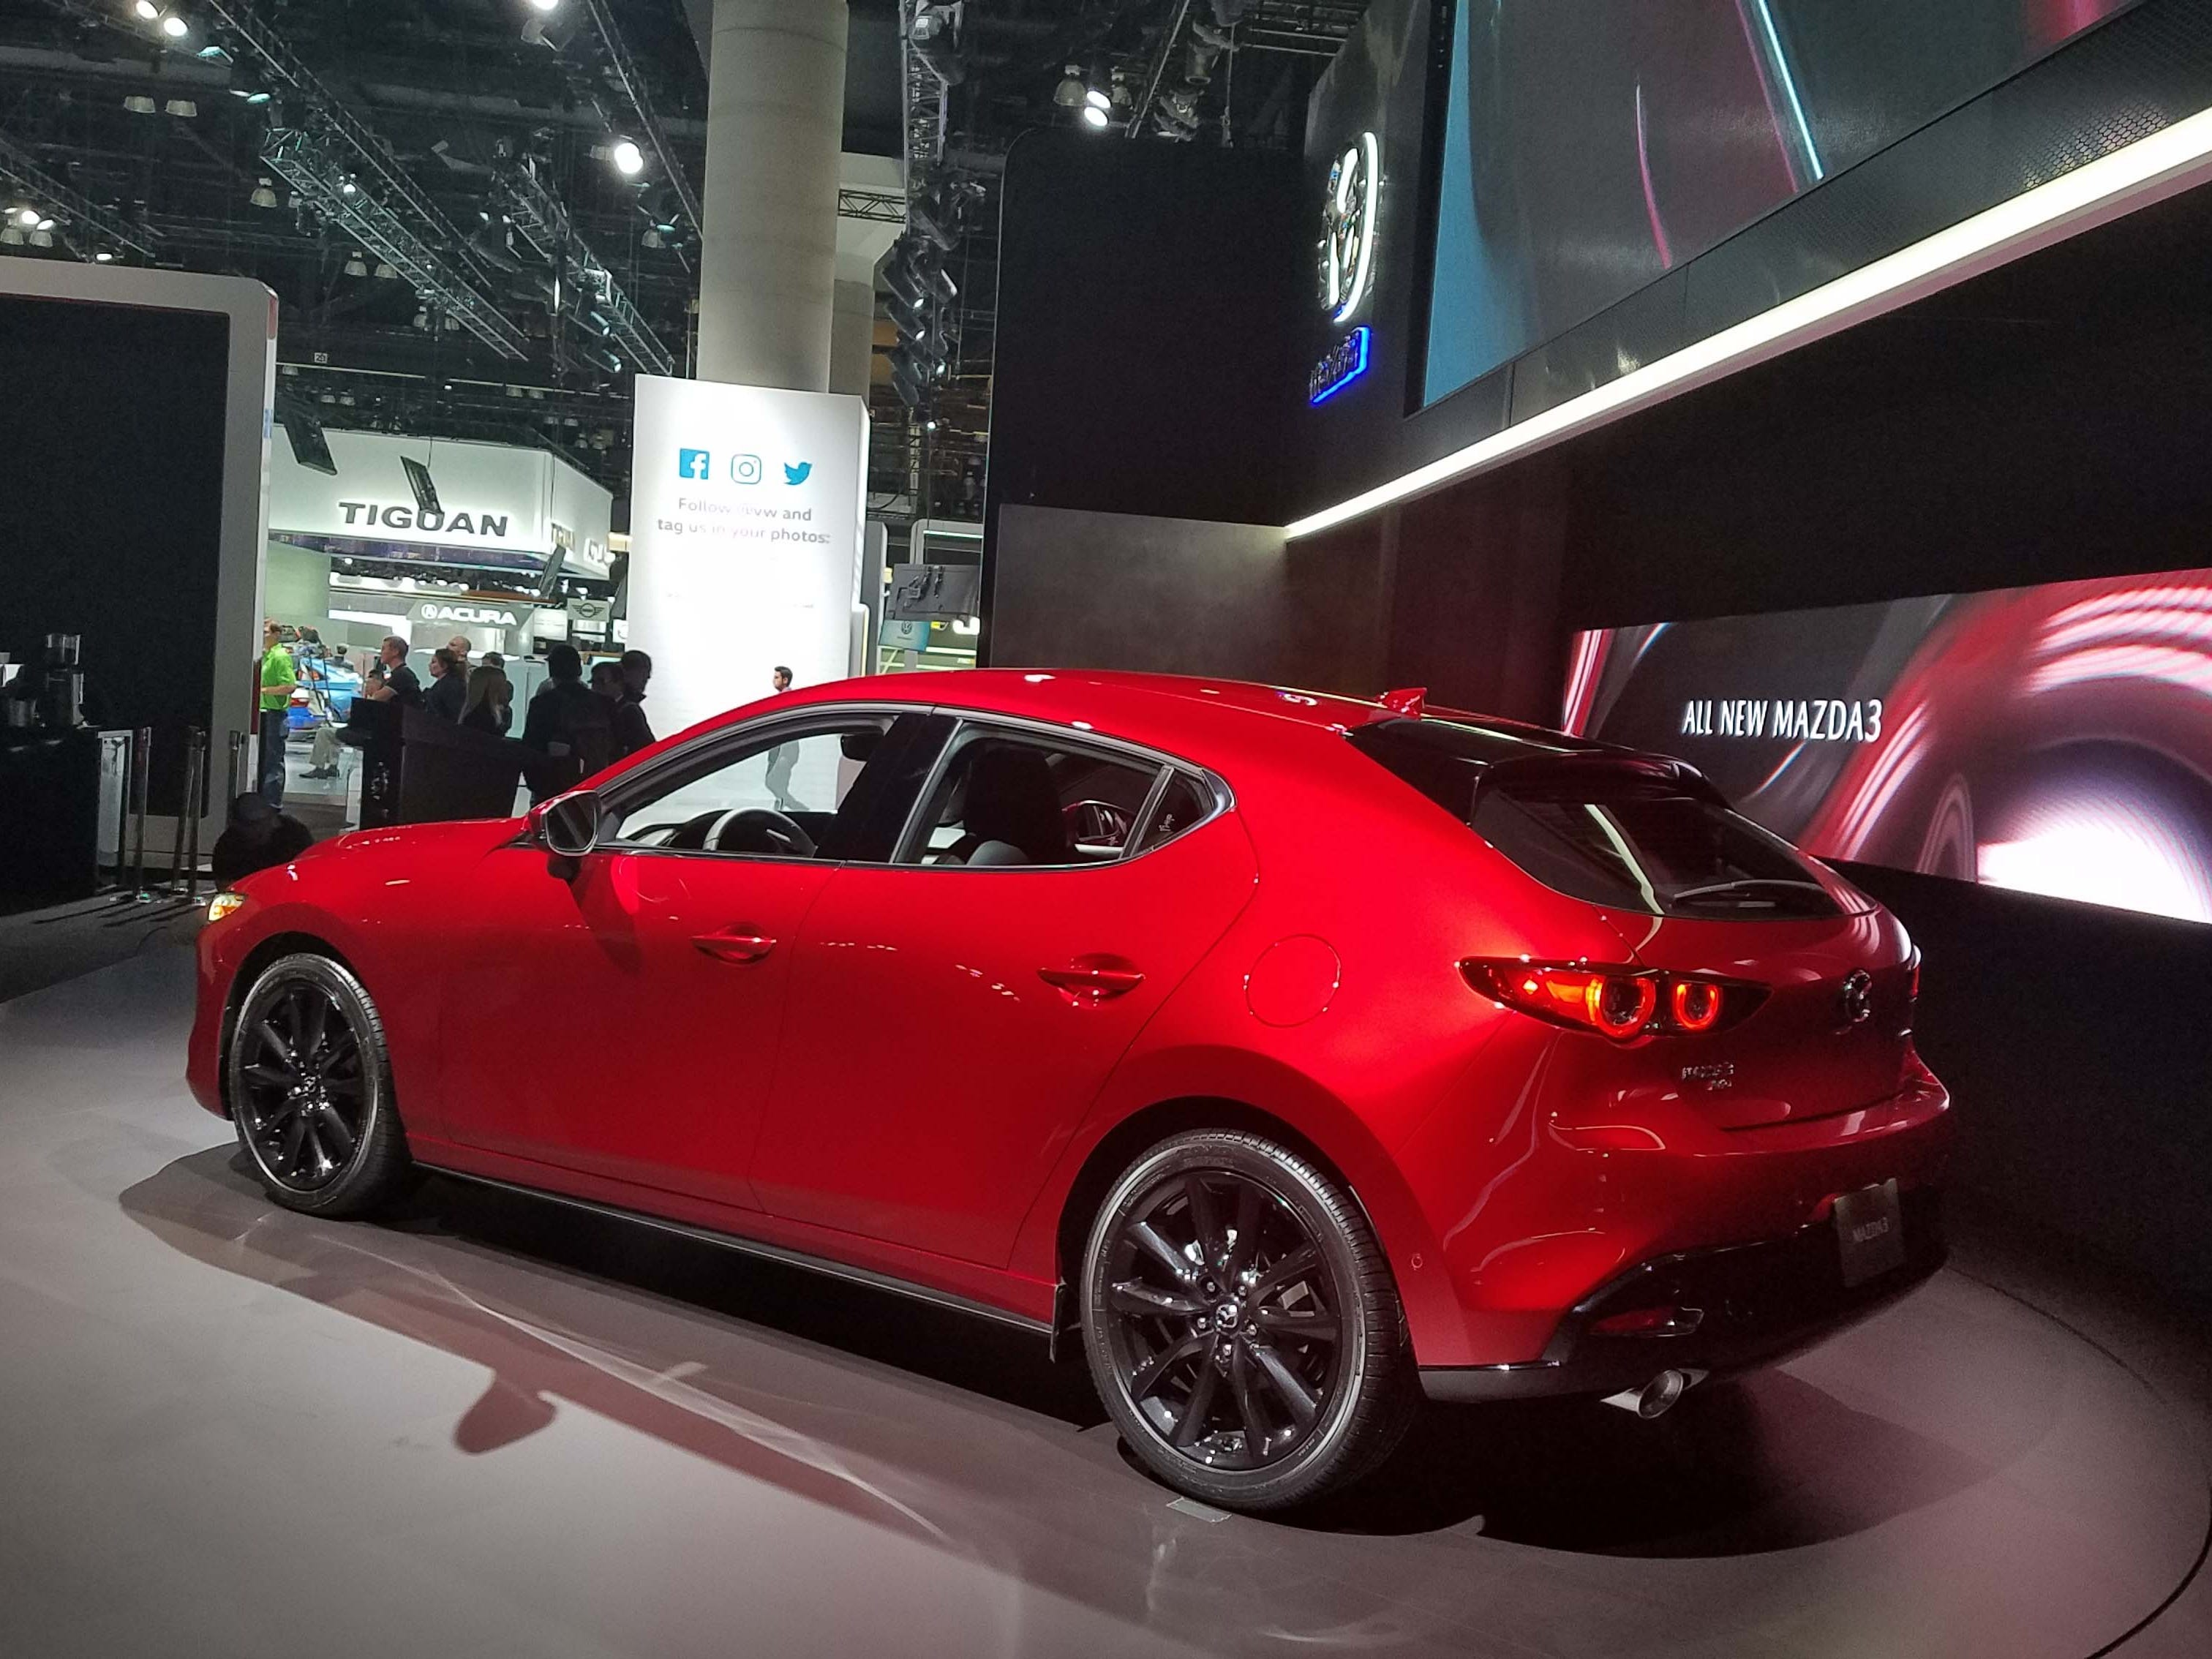 The Mazda 3 sports sexy looks and a Soul Red paint job. Not bad for a $25k compact hatch.